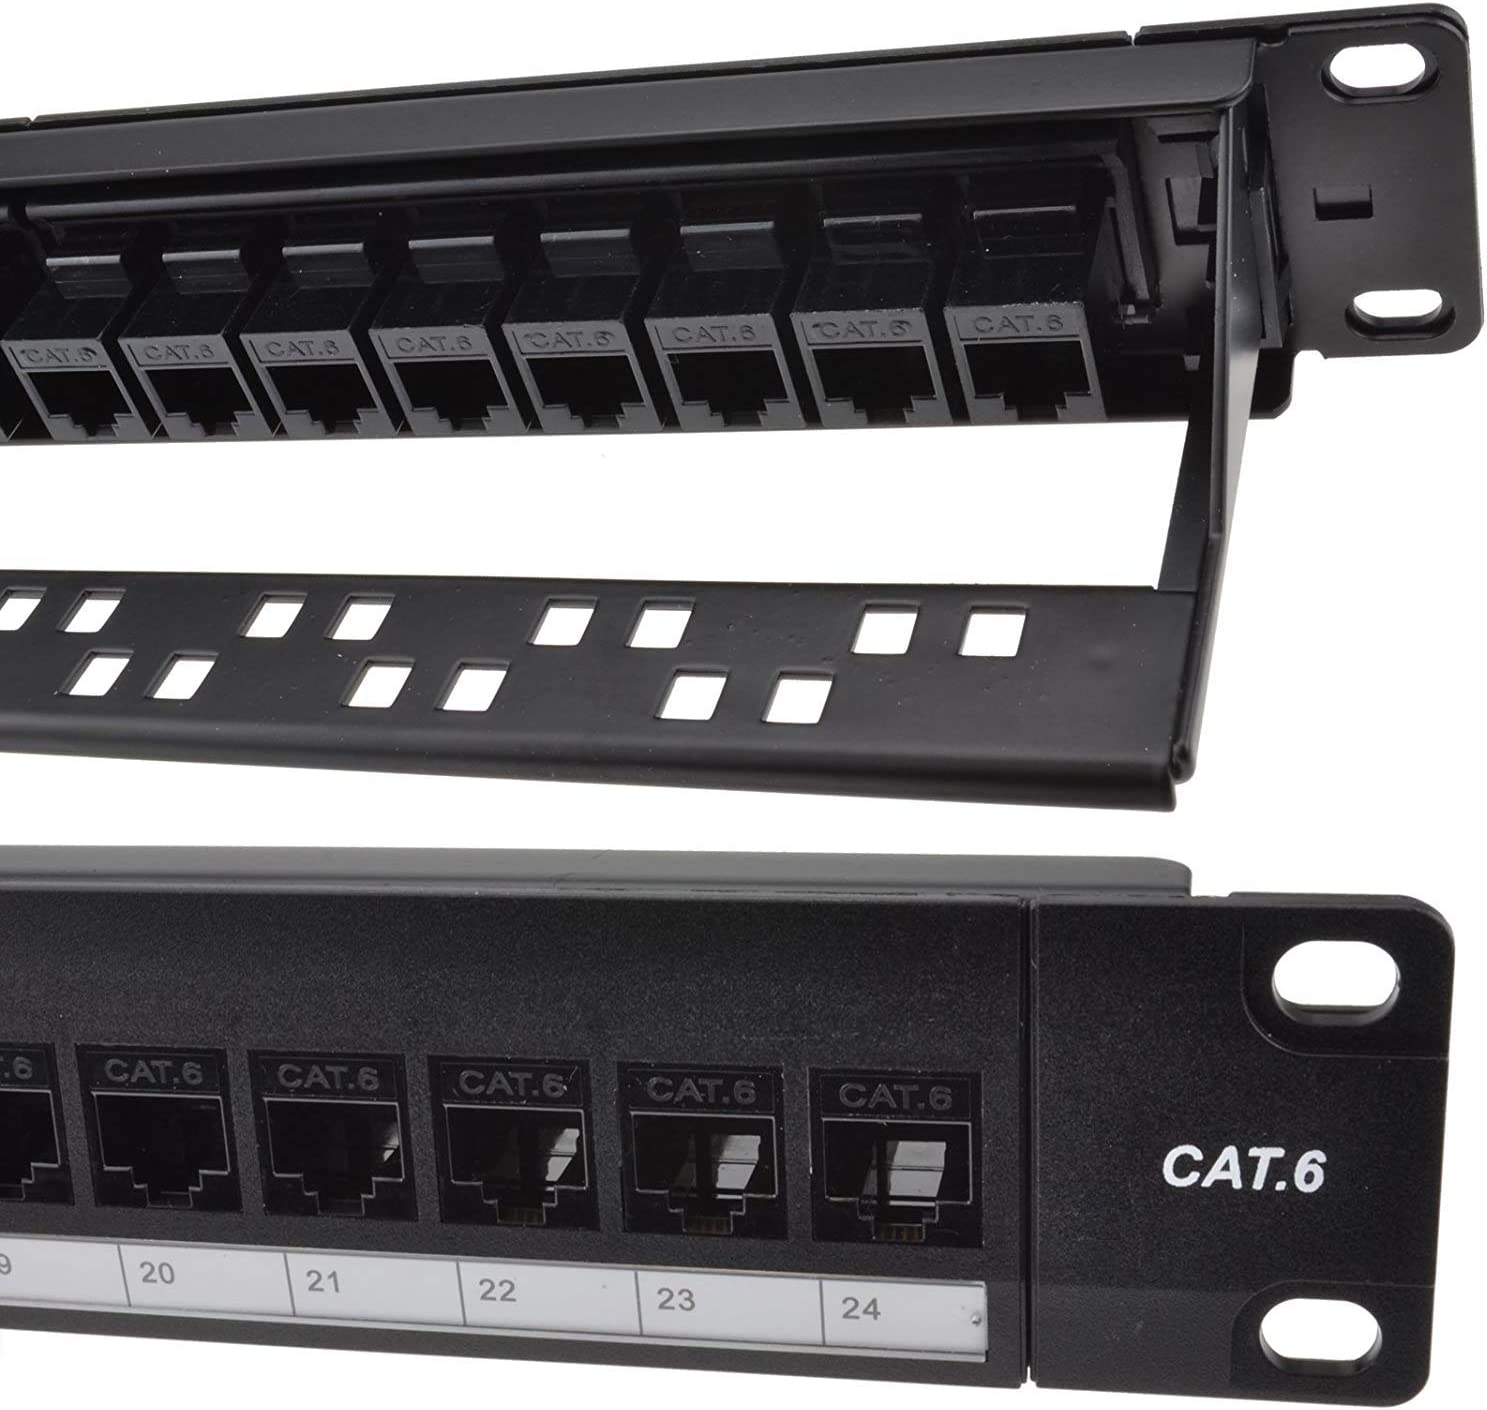 Detroit Packing Co. 24 Port CAT6 RJ45 Through Coupler Patch Panel with Back Bar, Wallmount or Rackmount, Compatible with Cat5, Cat5e, Cat6, Cat6A, UTP STP Cabling (CAT6 UnShielded, 24-Port)